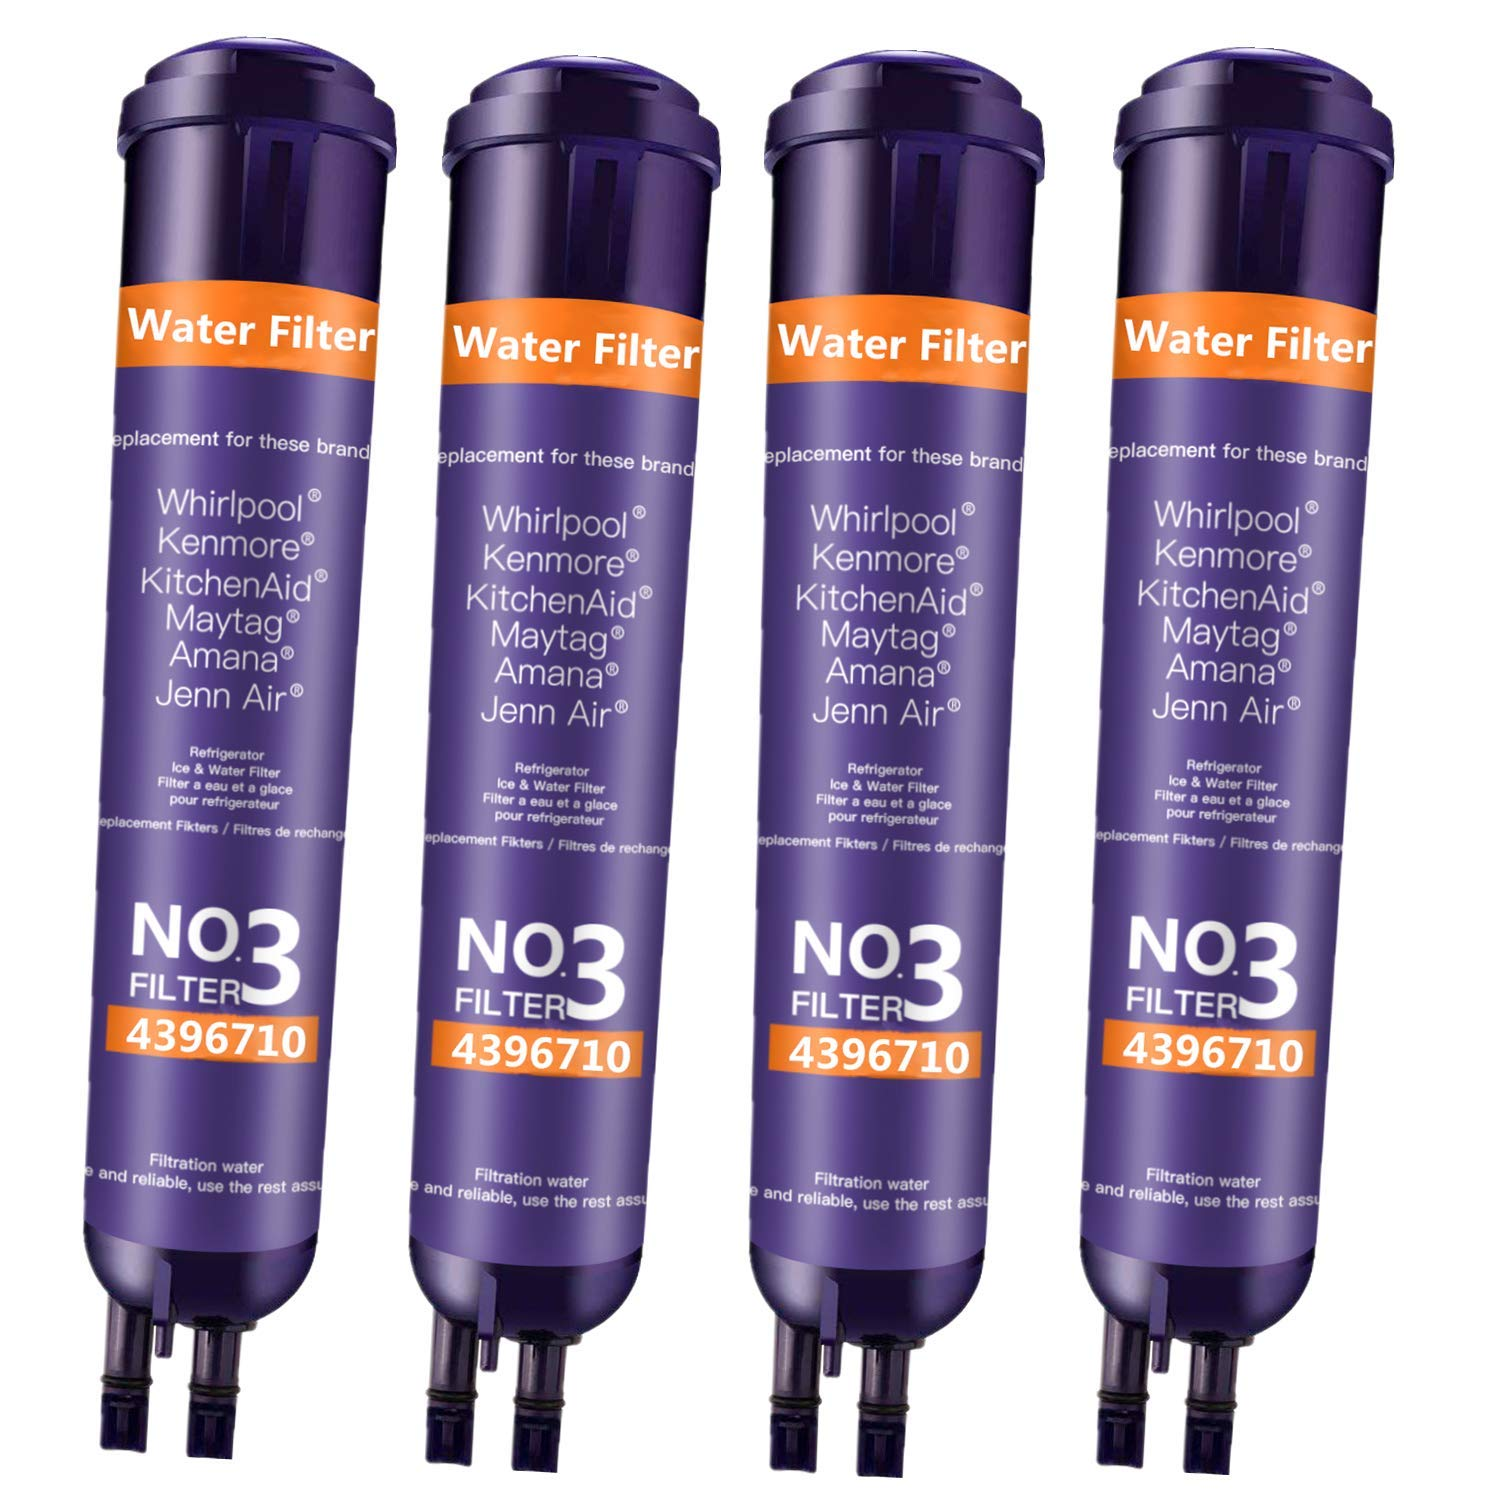 DOBY 46 9020 Water Filter Replacement for Ken_More 46 9083 Water Filter, 46-9030 Water Filter(Purple 4 Pack)